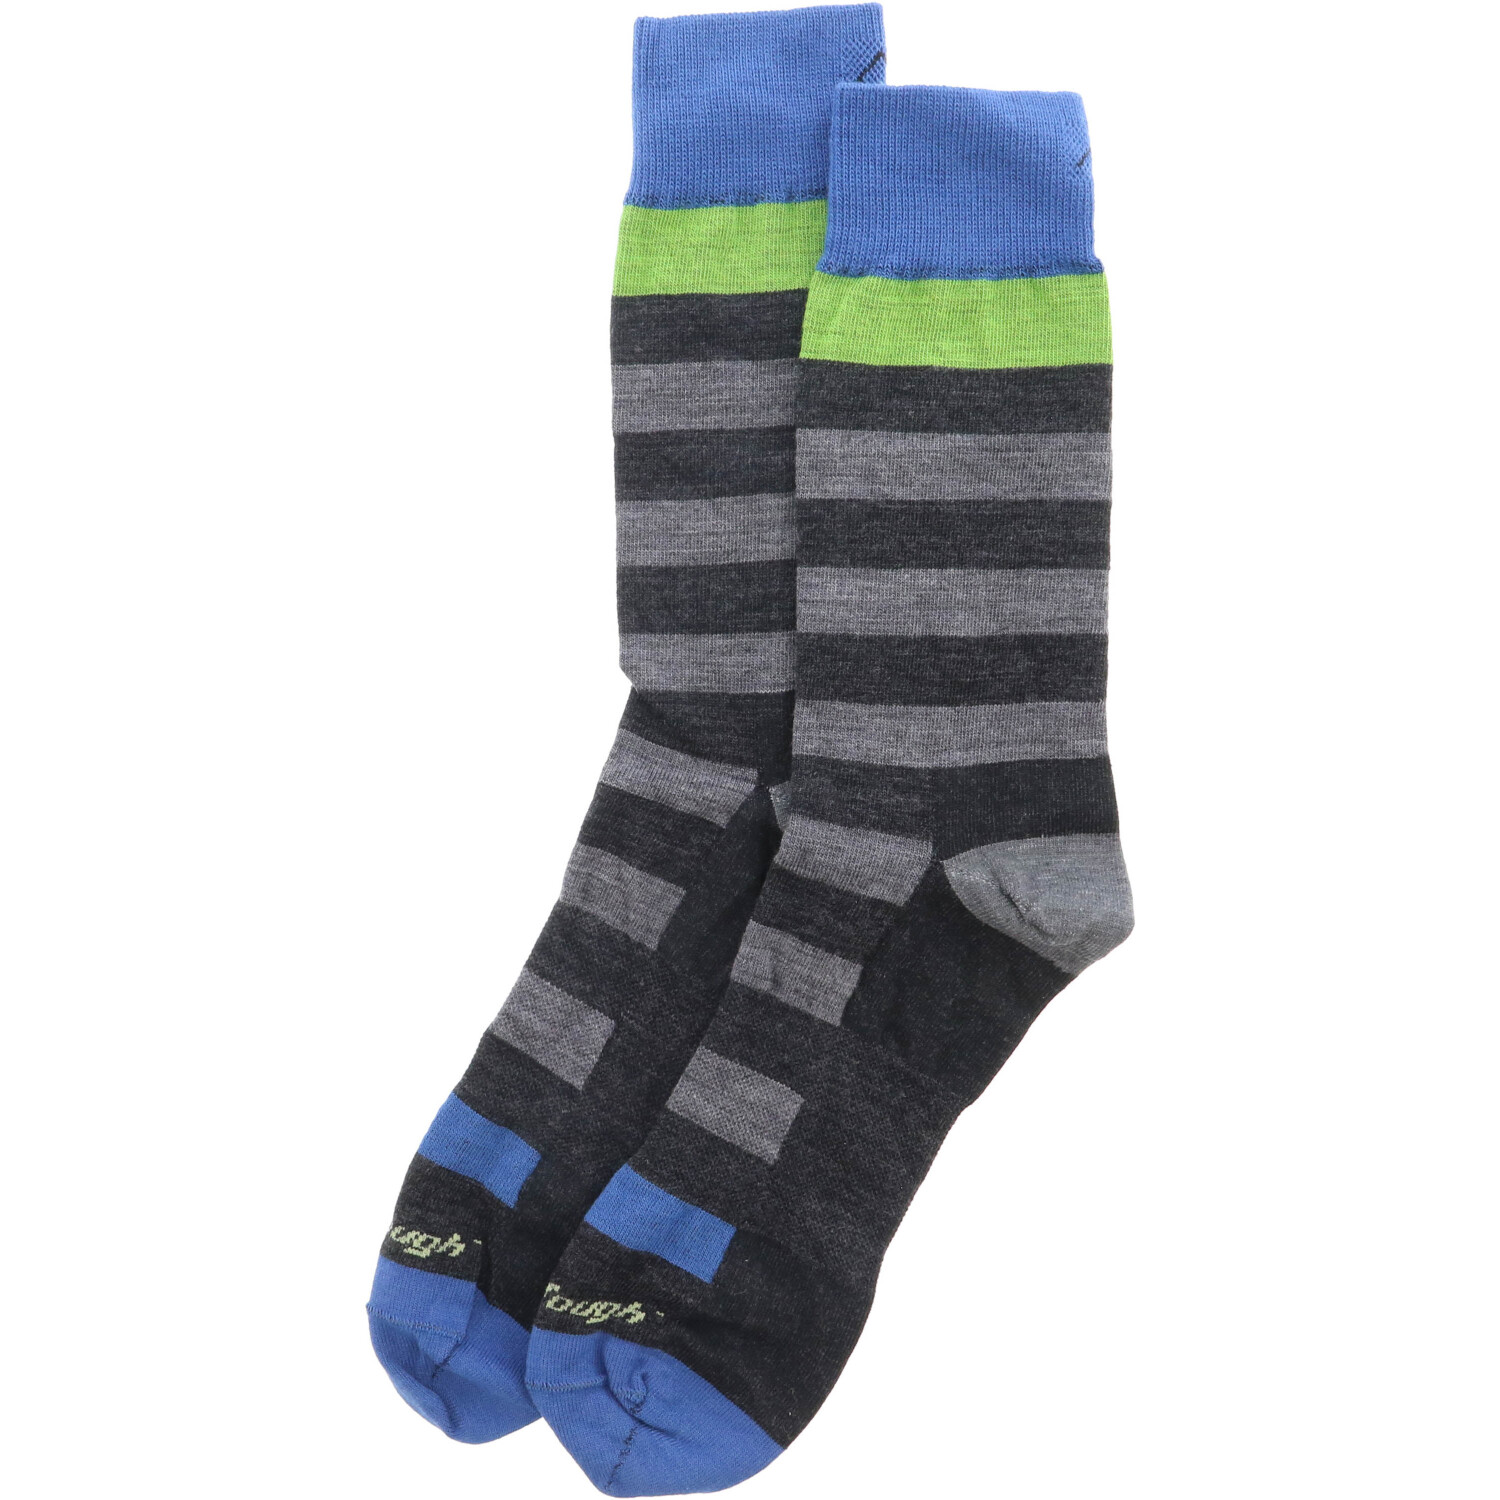 Darn Tough Charcoal / Grey Warlock Crew Light Casual & Dress Sock - L